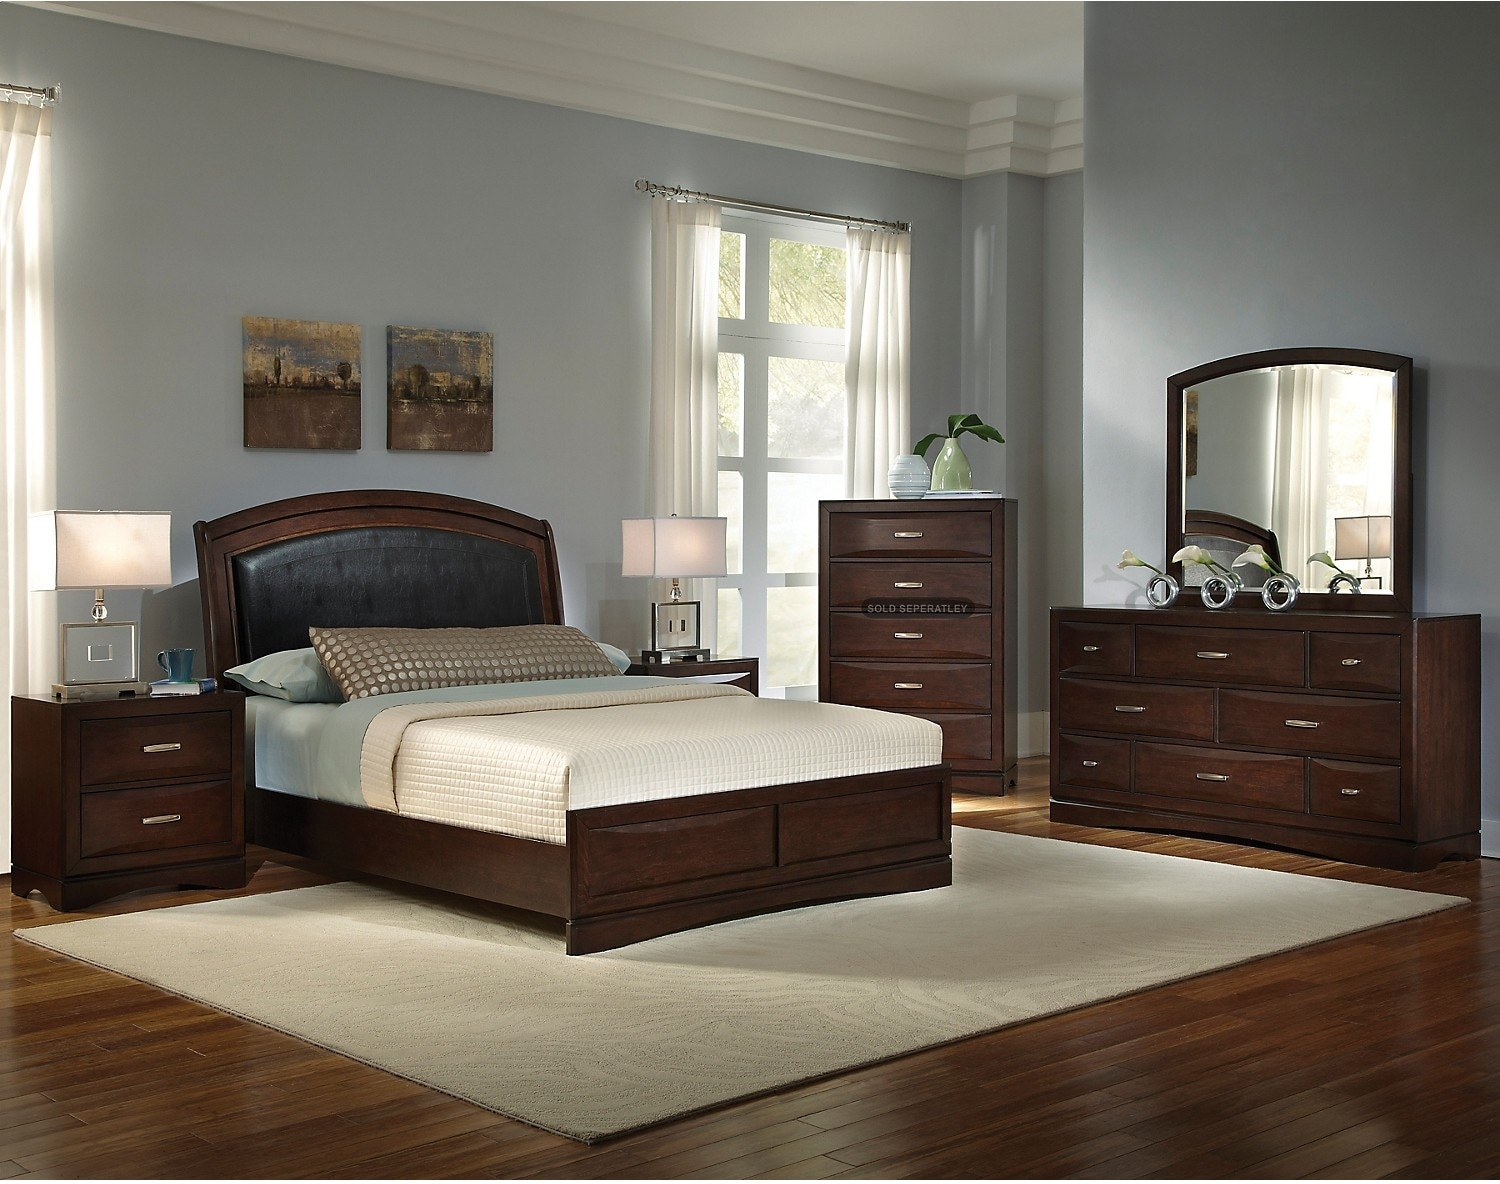 Beverly 6 piece queen bedroom package the brick for Bedroom ideas queen bed